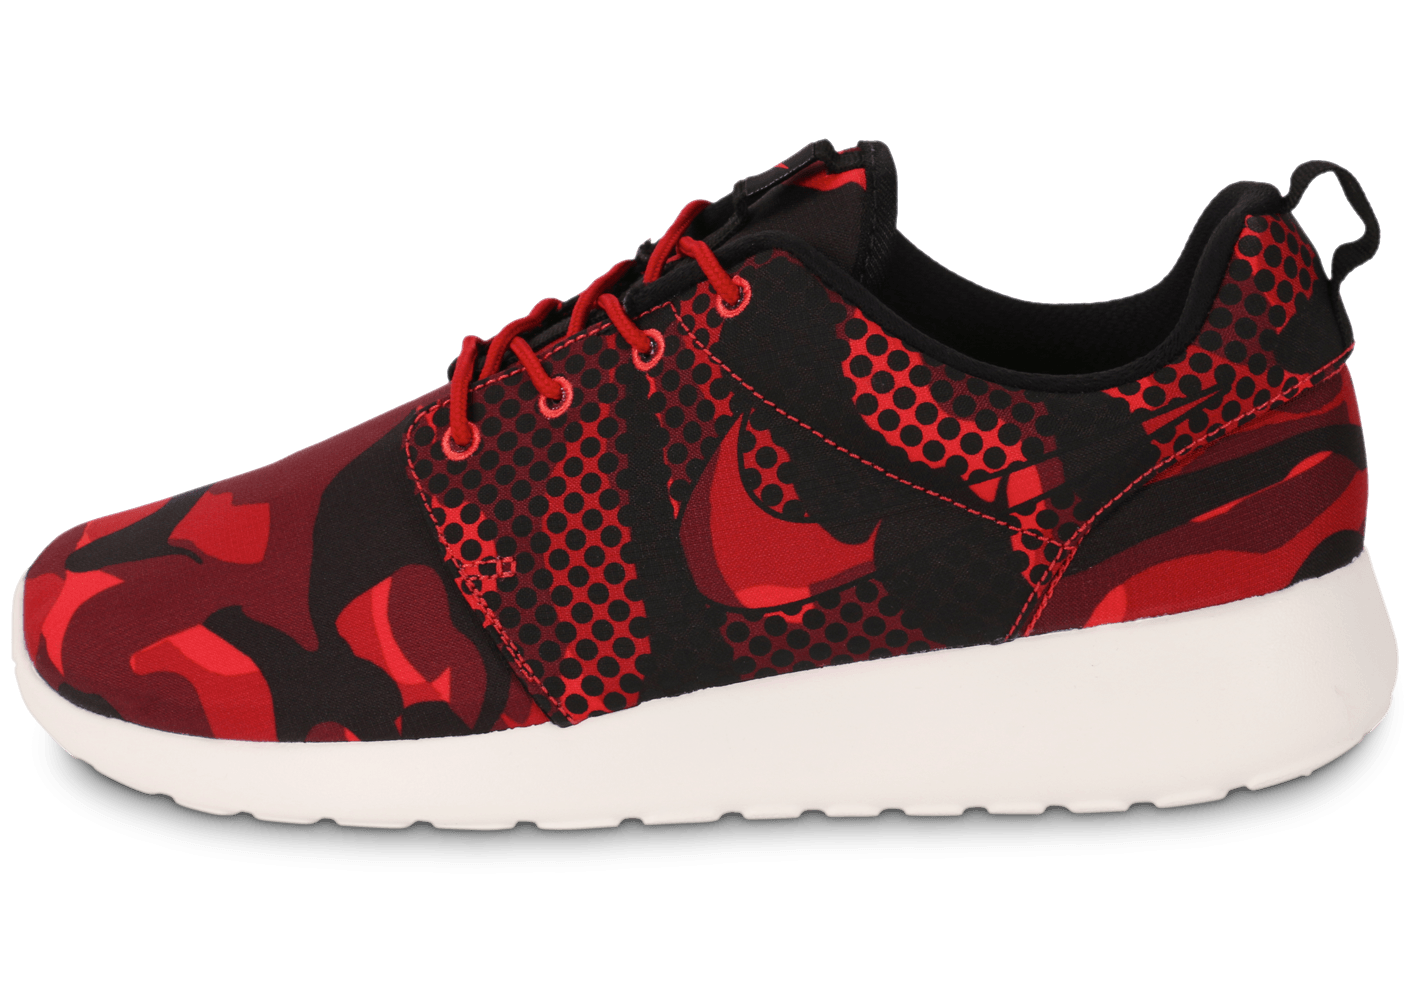 buy online 39fa5 db0ef Nike Roshe One Print Camo rouge - Chaussures Baskets homme - Chausport